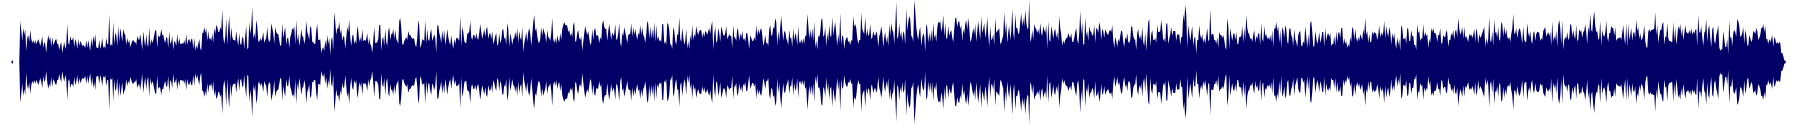 waveform of track #67499